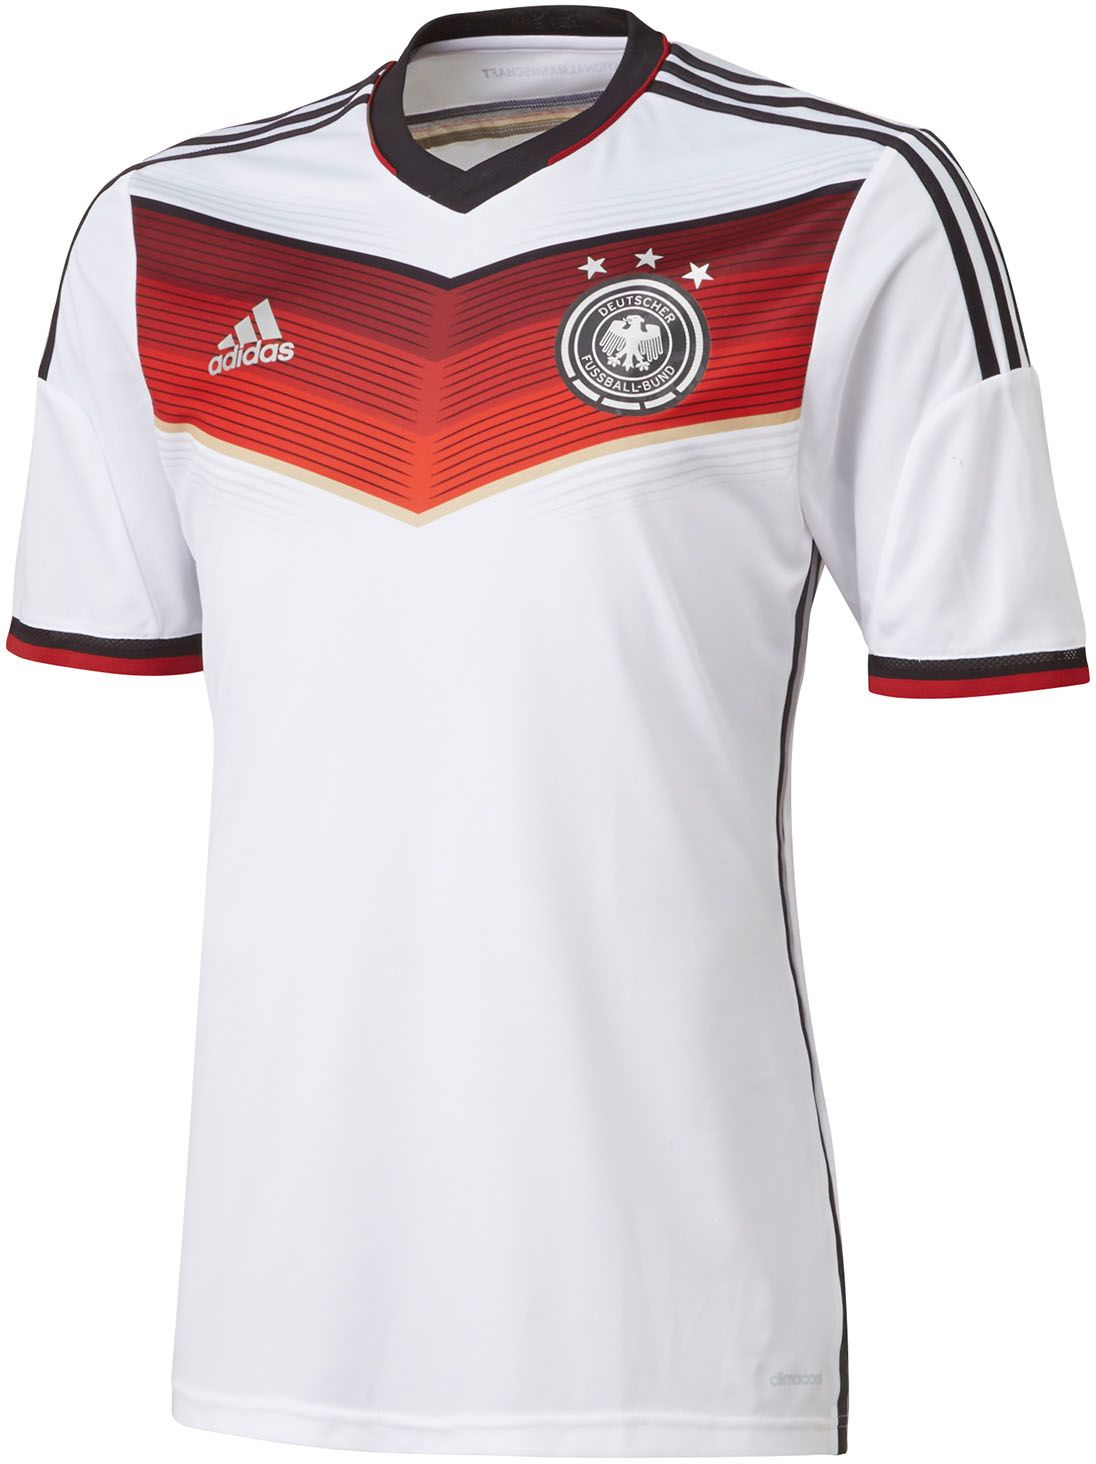 dbdeca228 The new Germany 2014 World Cup Home Jersey is mainly white with red and  black applications. On the front of the Germany 2014 World Cup Kit features  a ...